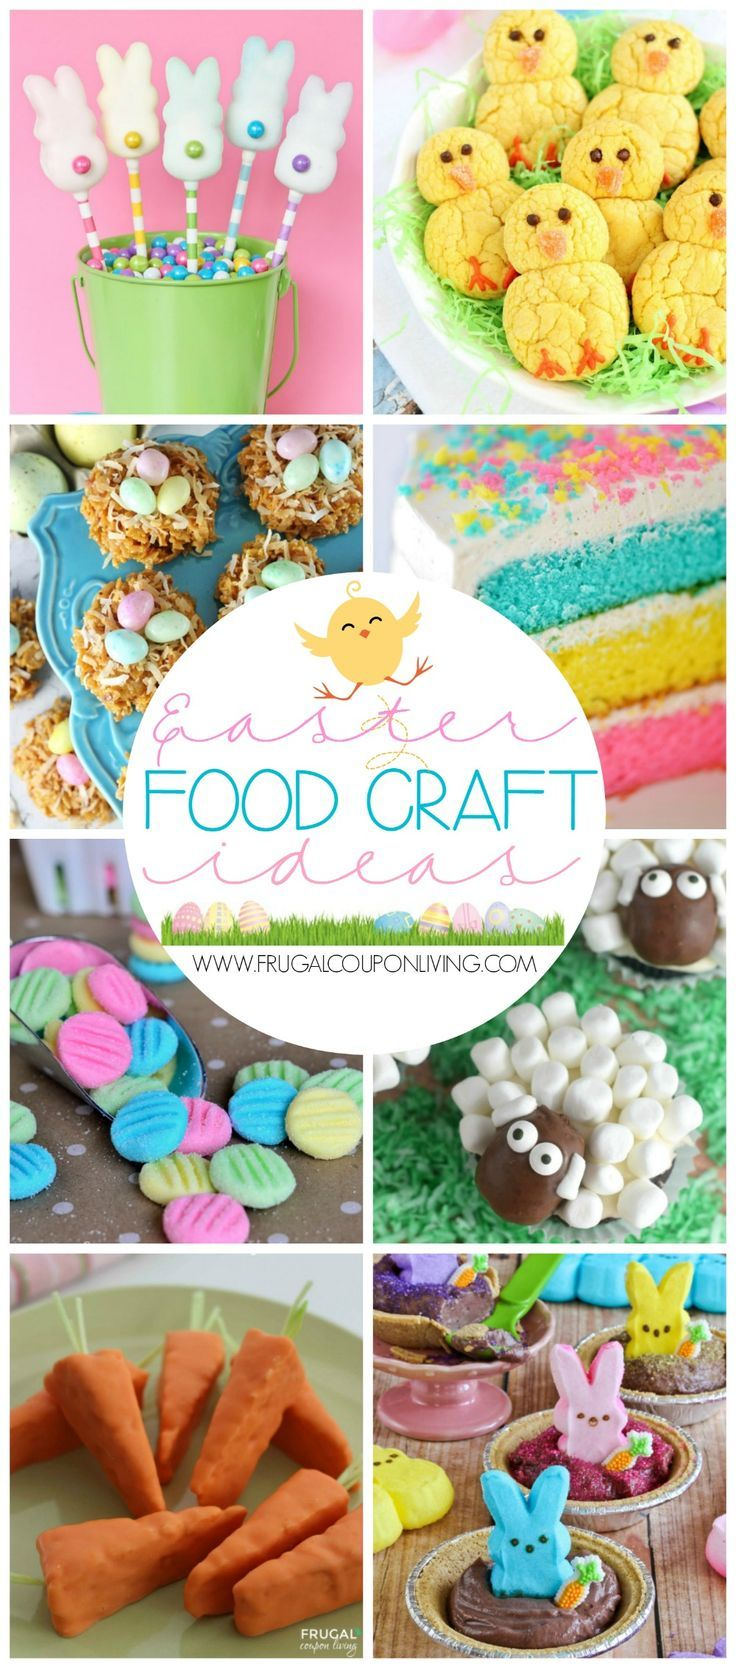 Easter Food Craft Ideas for the Kids including Chick Recipes, Sheep Cupcakes, Pe...